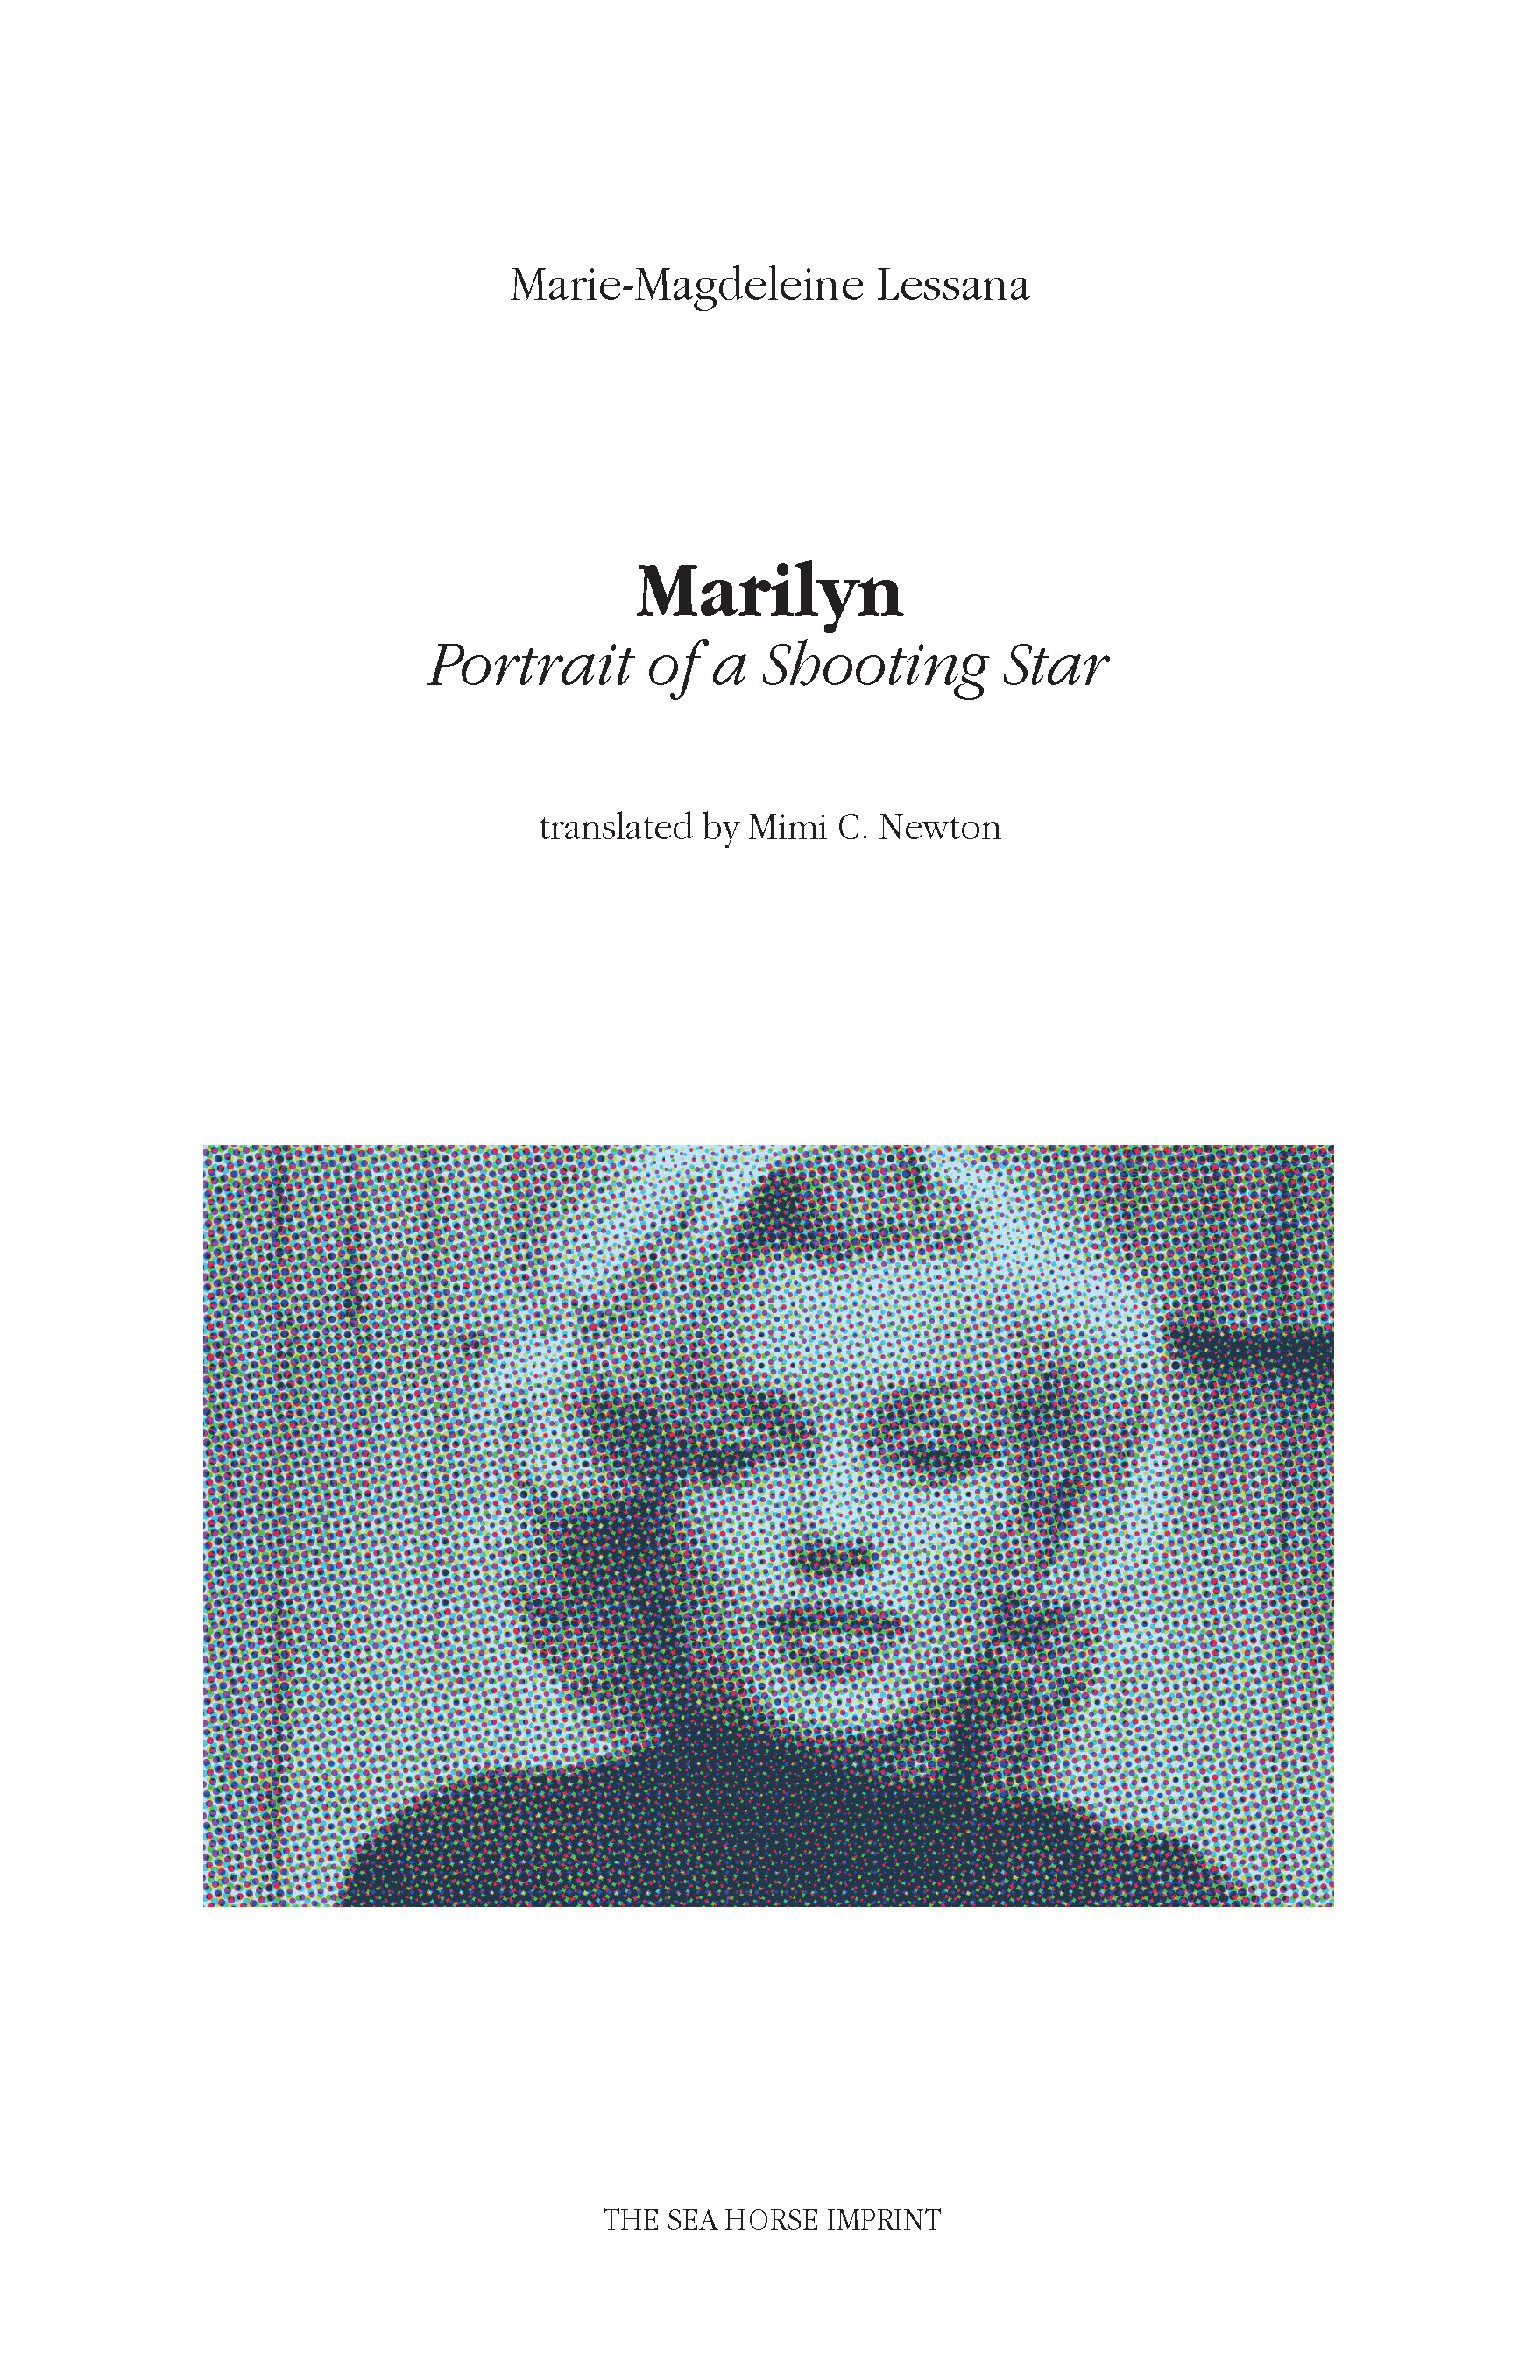 Marilyn: Portrait of a Shooting Star